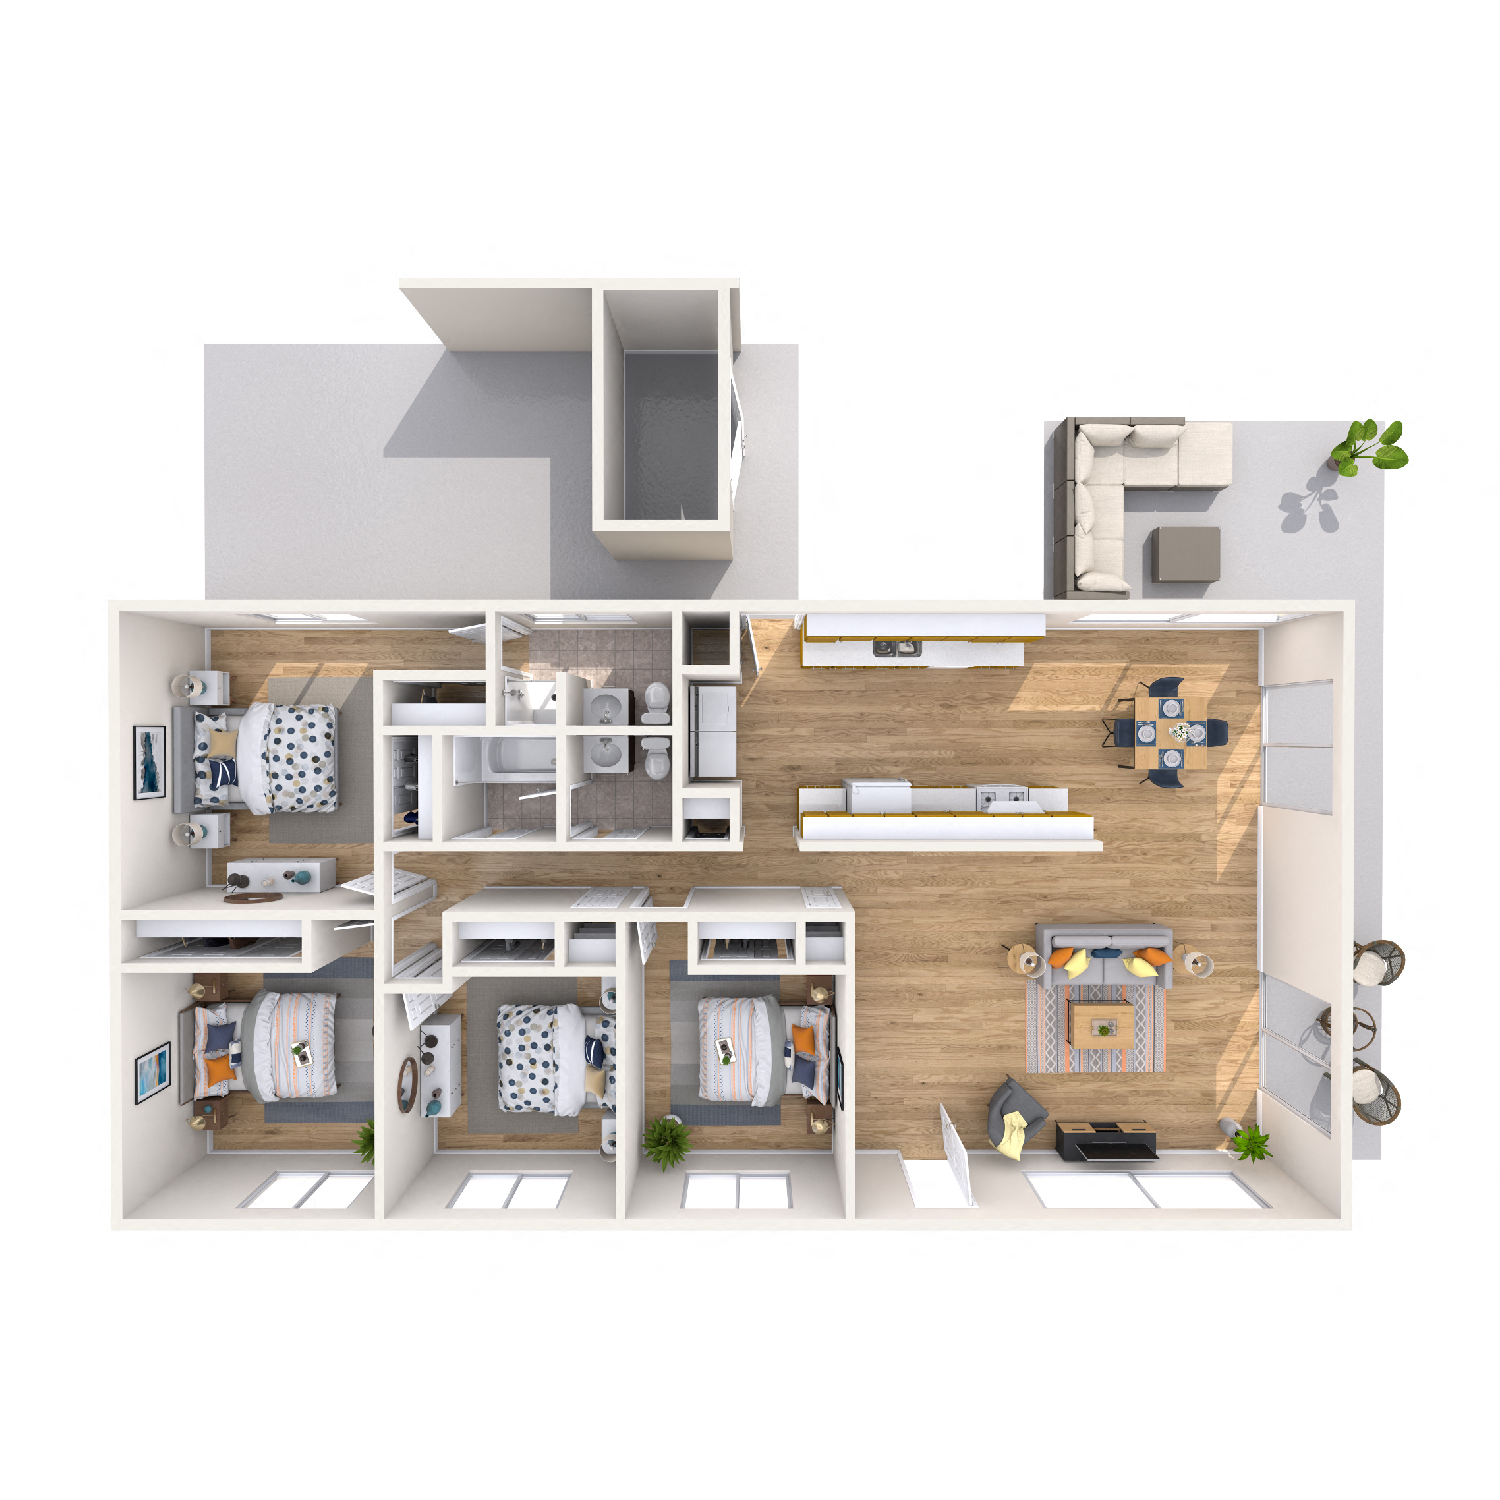 Pikake diagram - 4 bed 2 bath apt floorplan kapolei